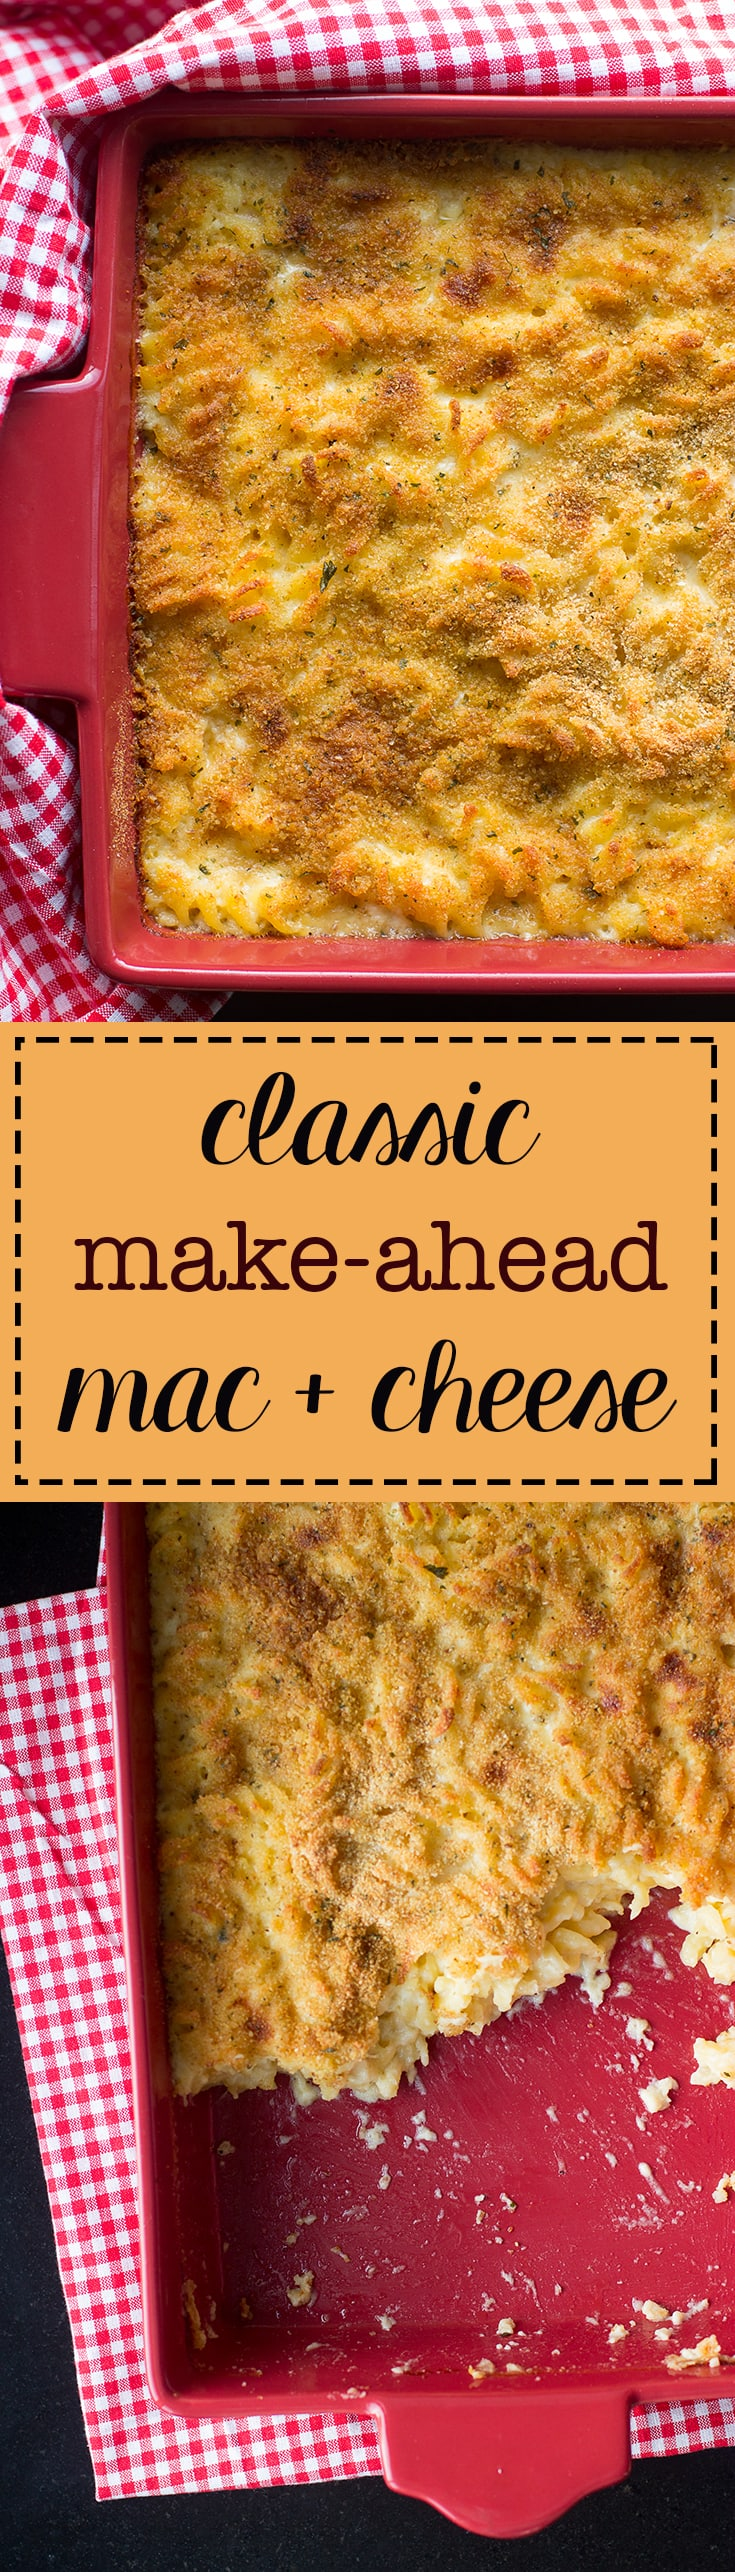 Comfort food at its most luxurious - baked mac and cheese with a crispy seasoned bread crumb topping and the easiest make-ahead option.